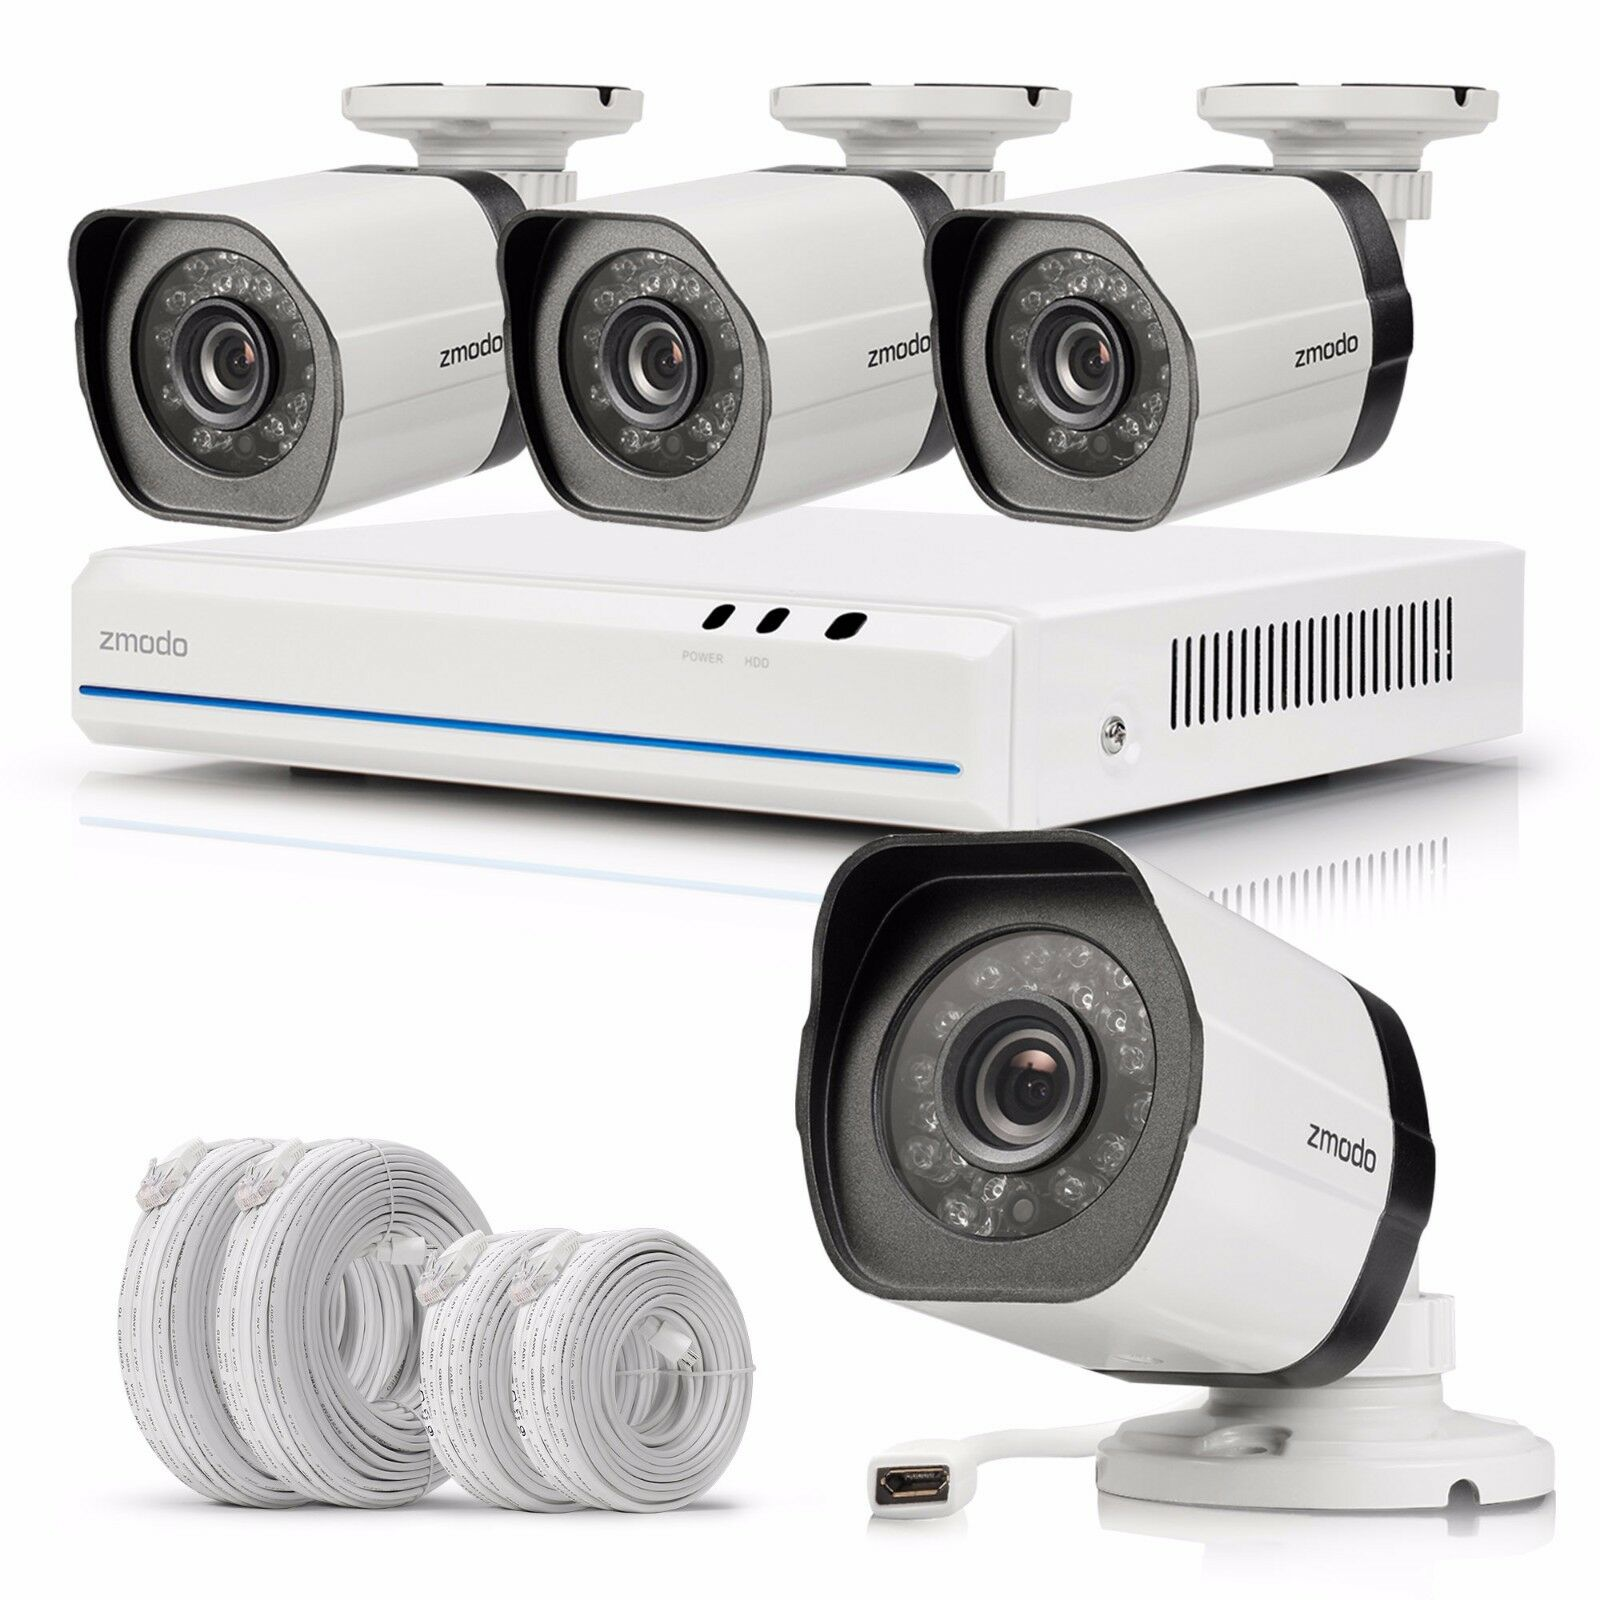 Zmodo 4CH 1080p Simplified PoE NVR 720p IP Network Security Camera System No HDD